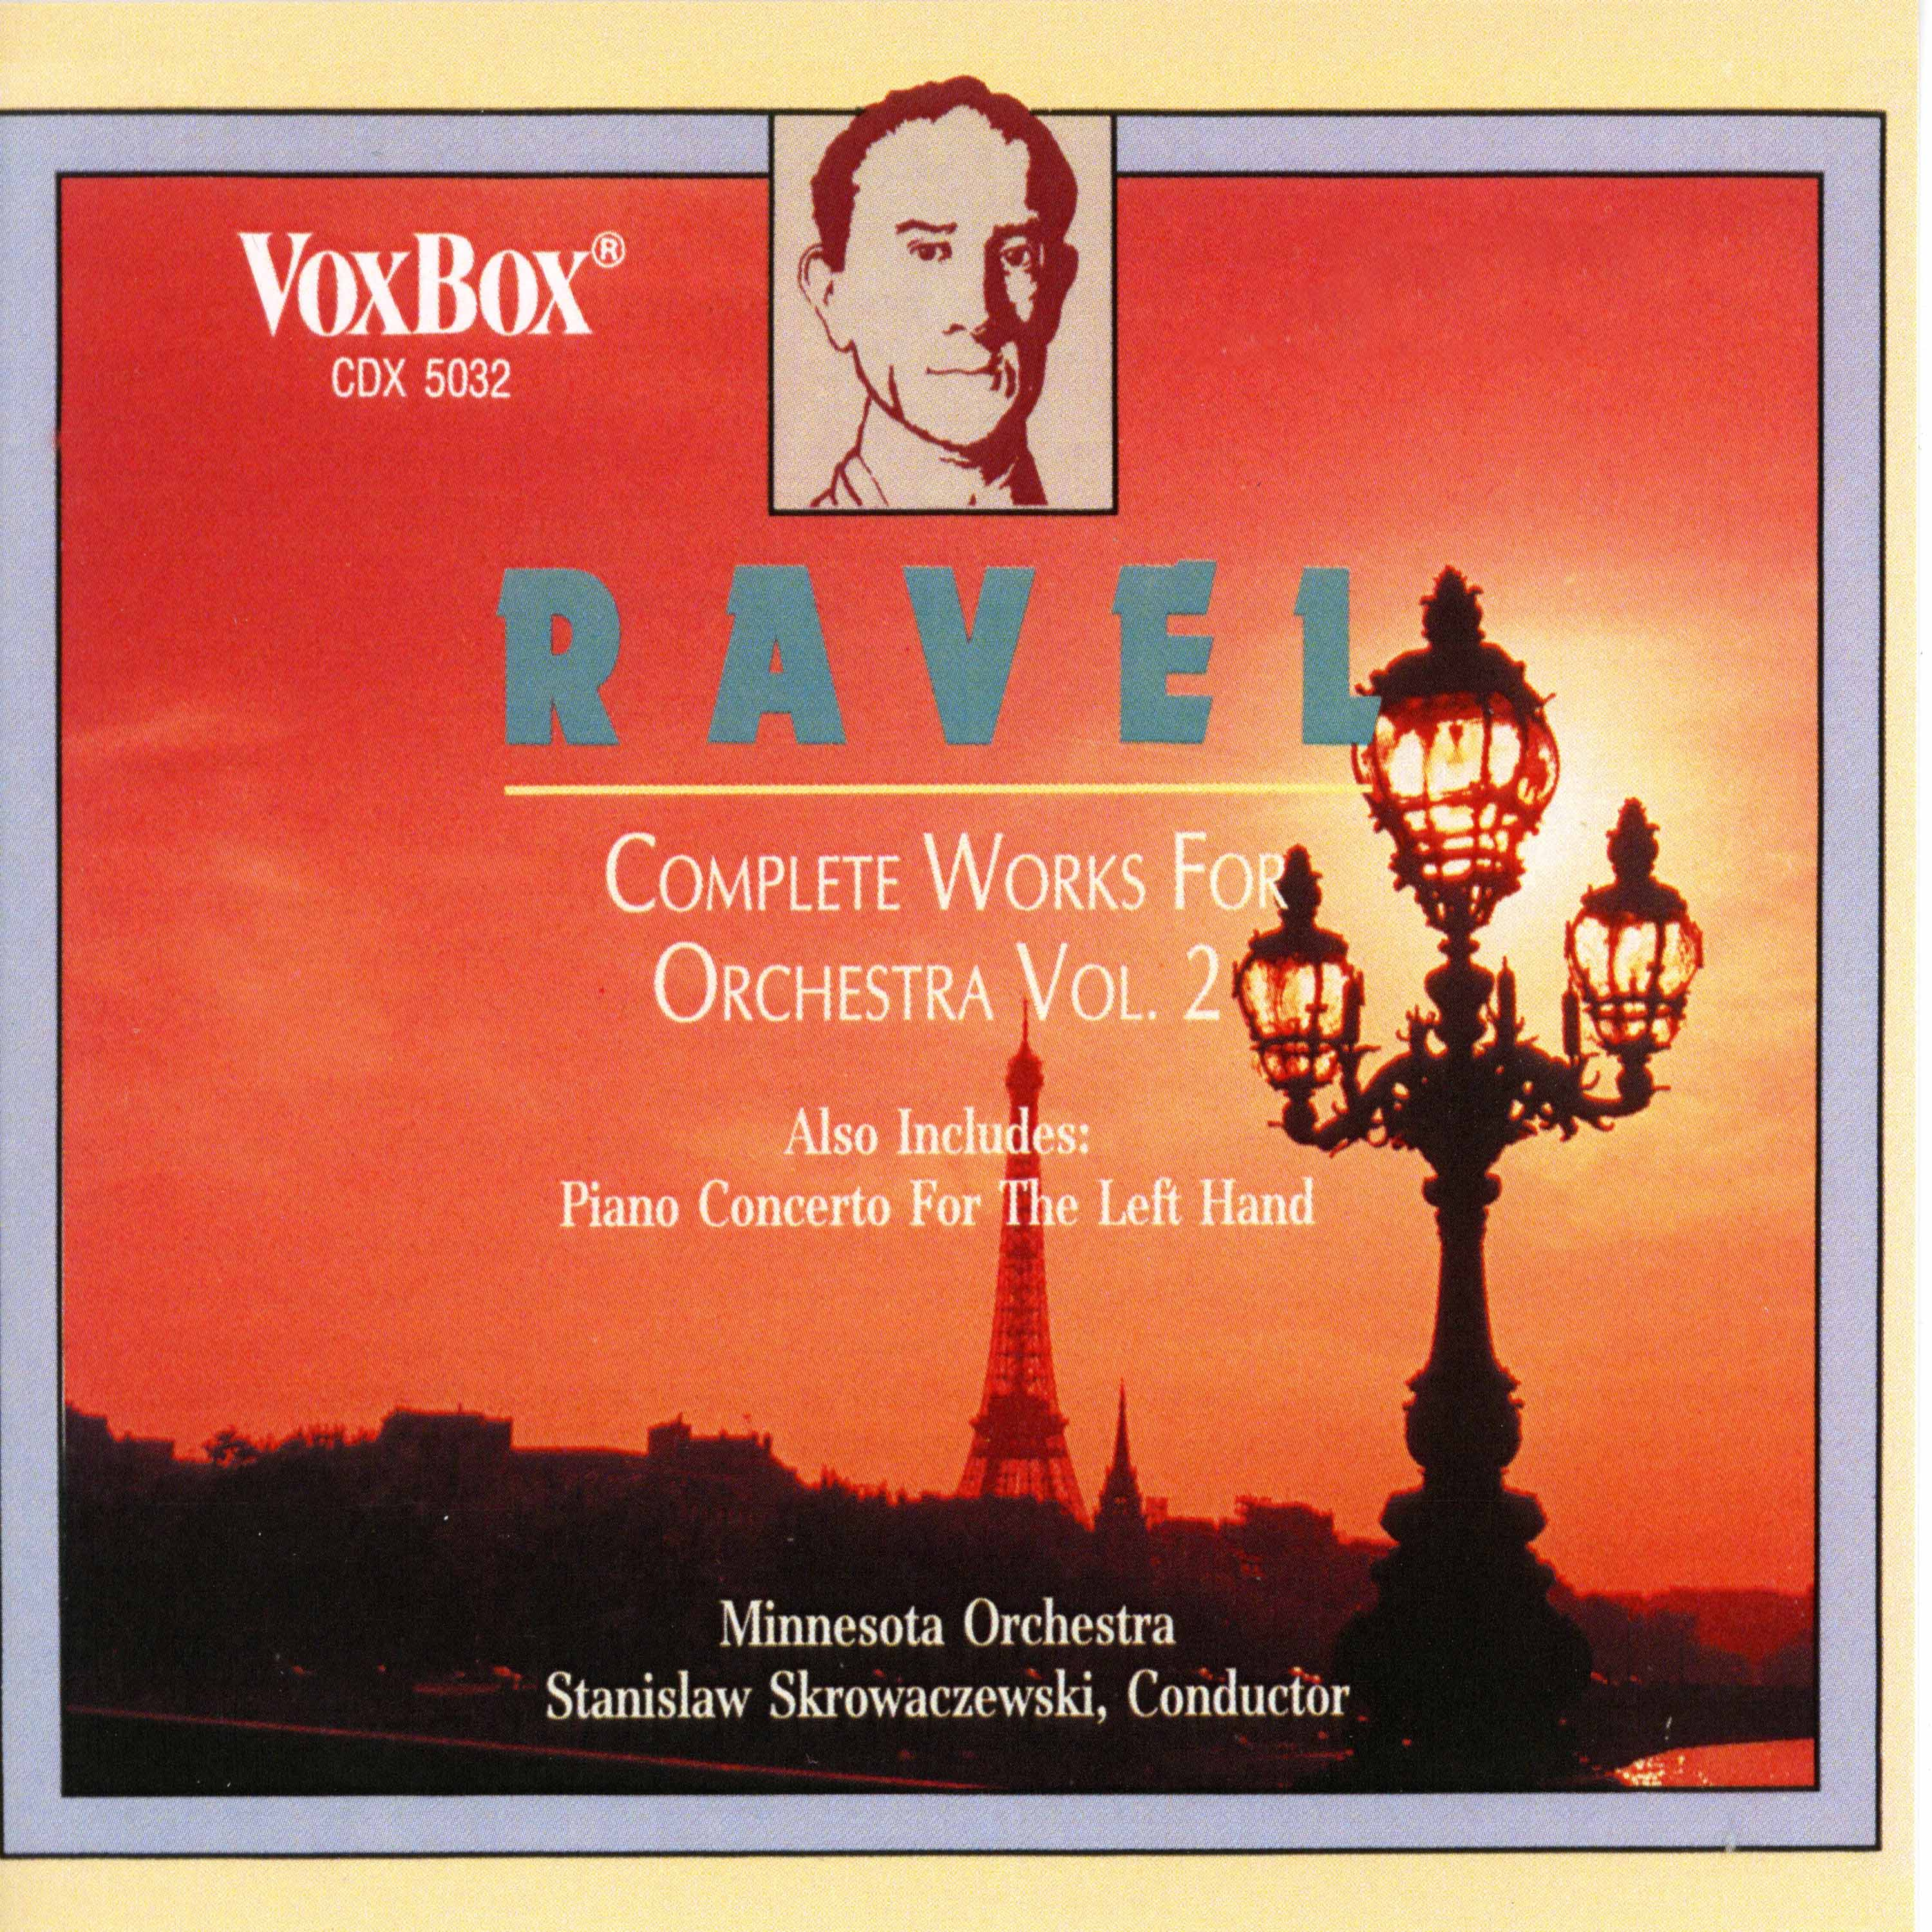 Ravel: Complete Works for Orchestra, Vol. 2